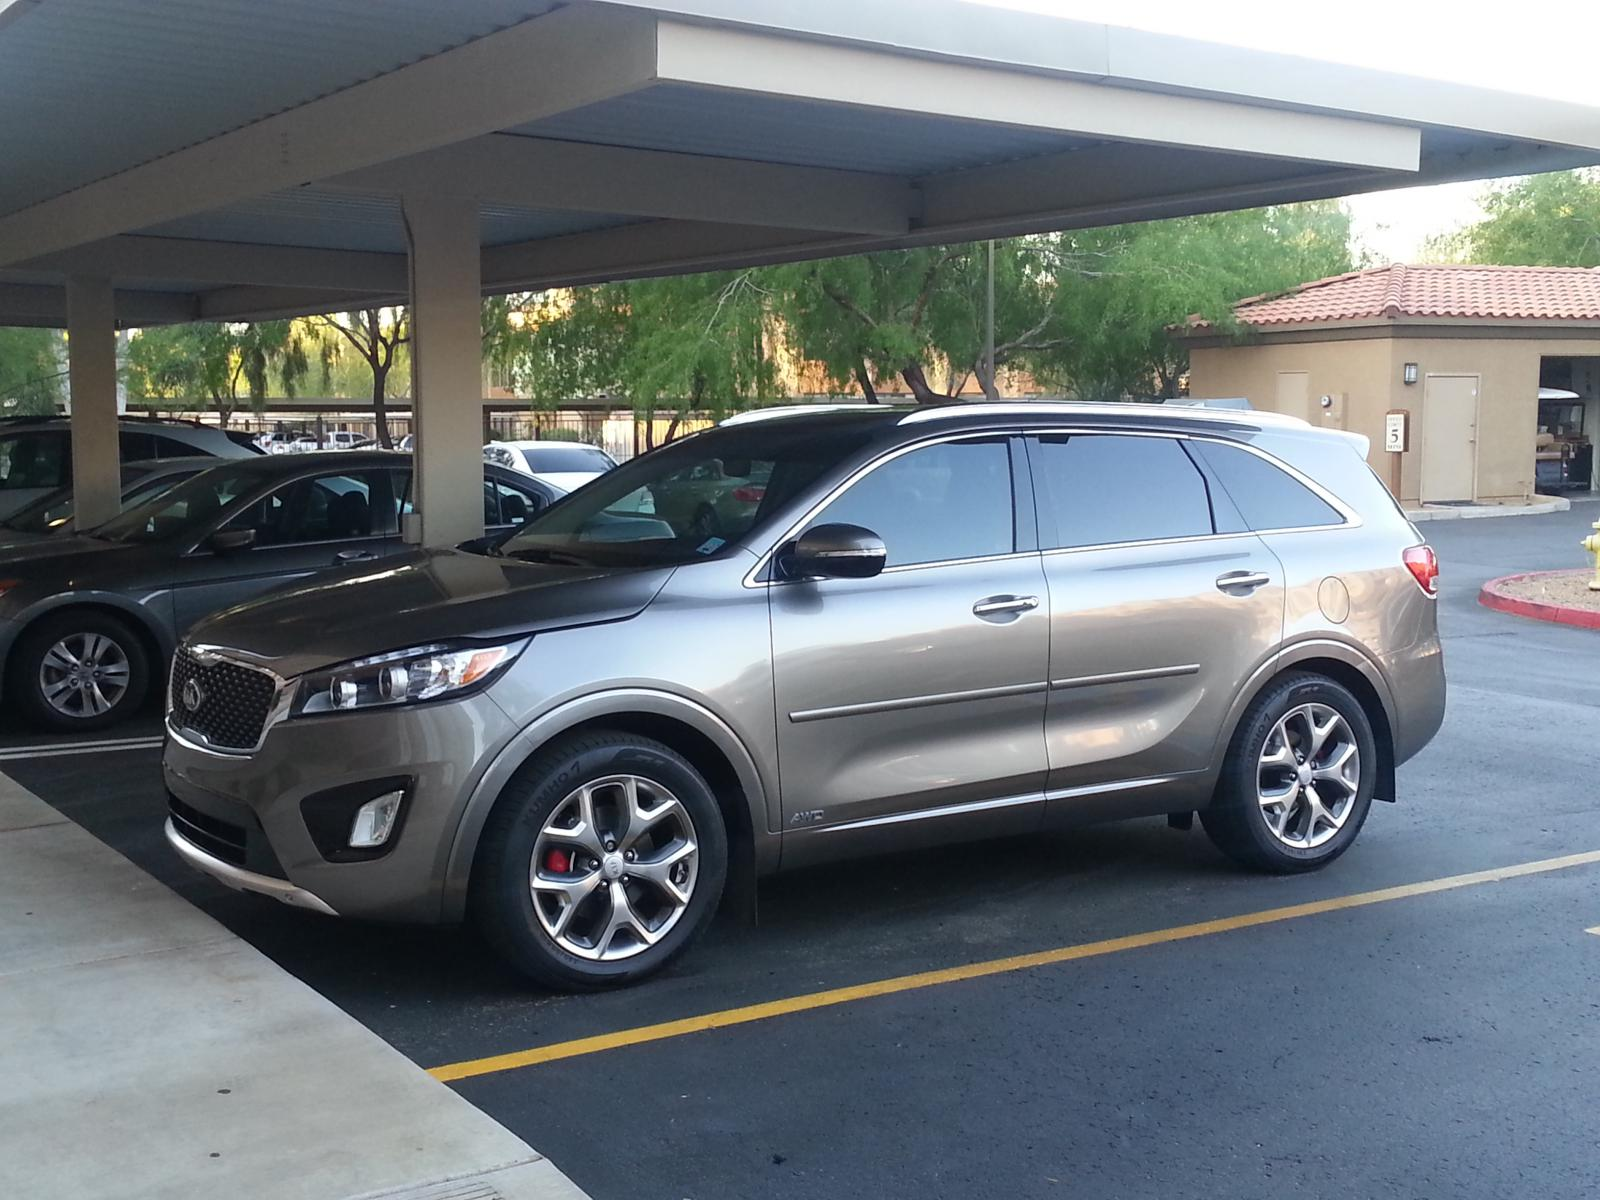 for florida sale fl sorento suv cars used price carsforsale fine ex kia in stock margate